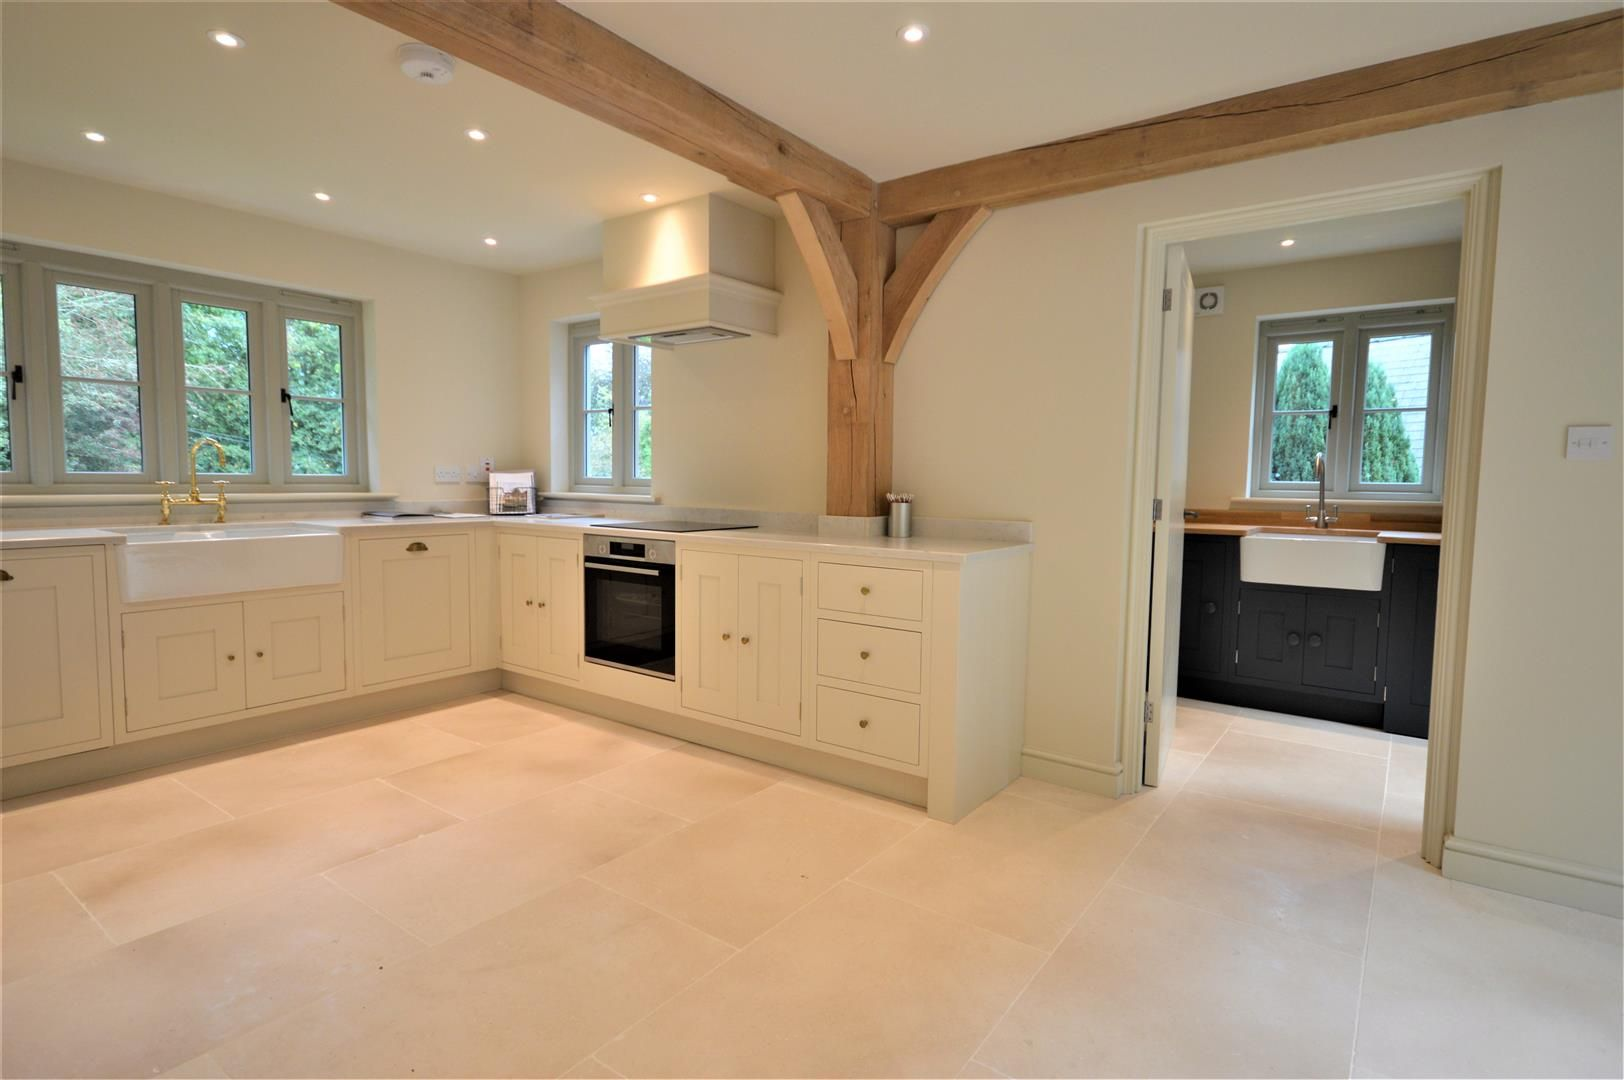 3 bed detached for sale in Dilwyn 2